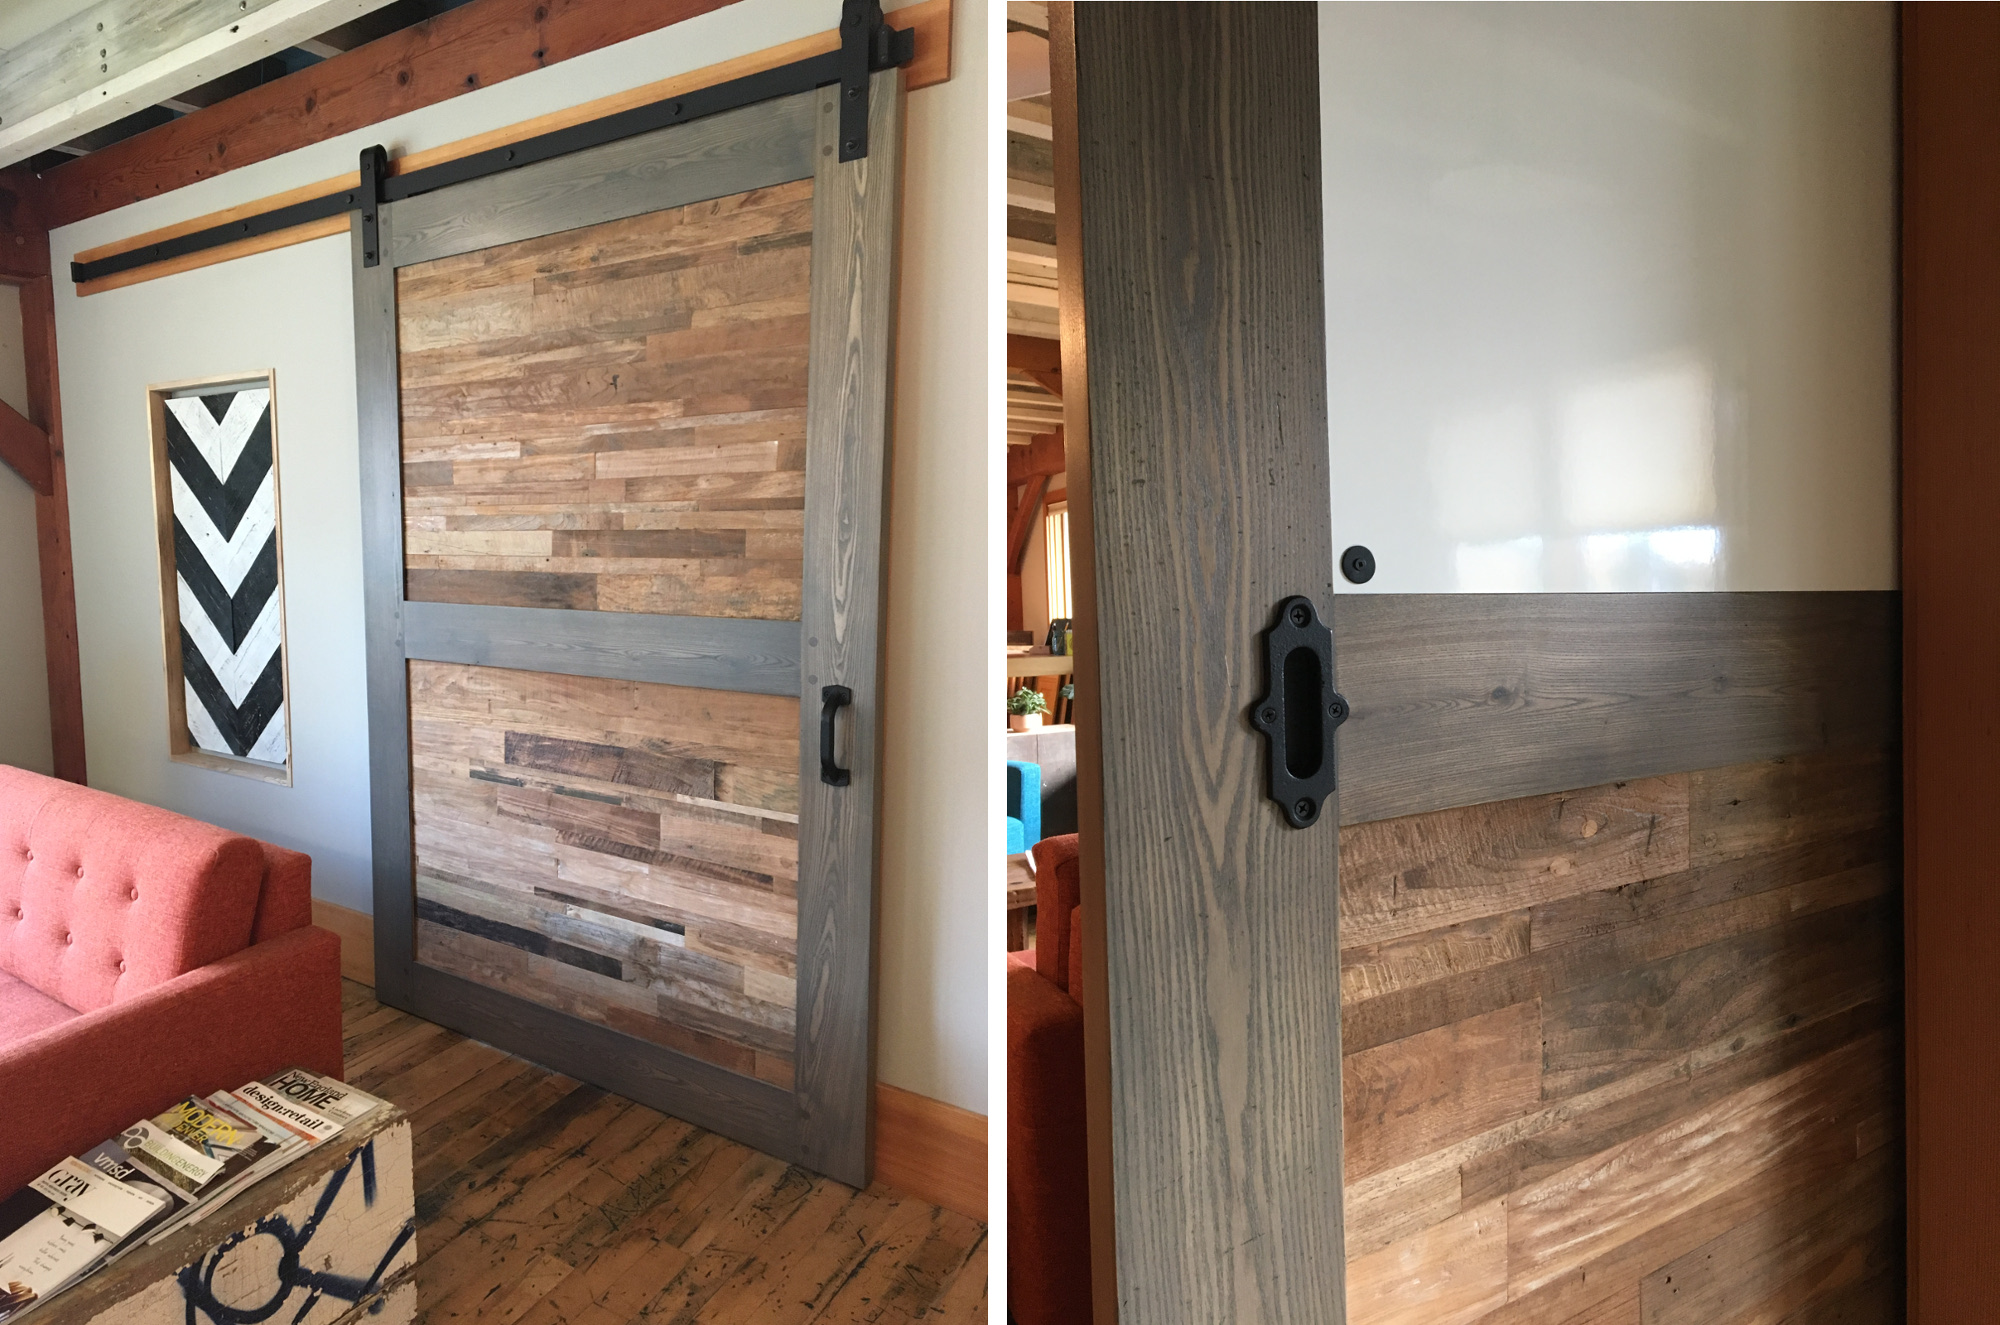 Combining Ash and Reclaimed Indonesian Teak with blackened metal hardware on the front, this showroom door also features a whiteboard on the interior office side with minimal exposed hardware.